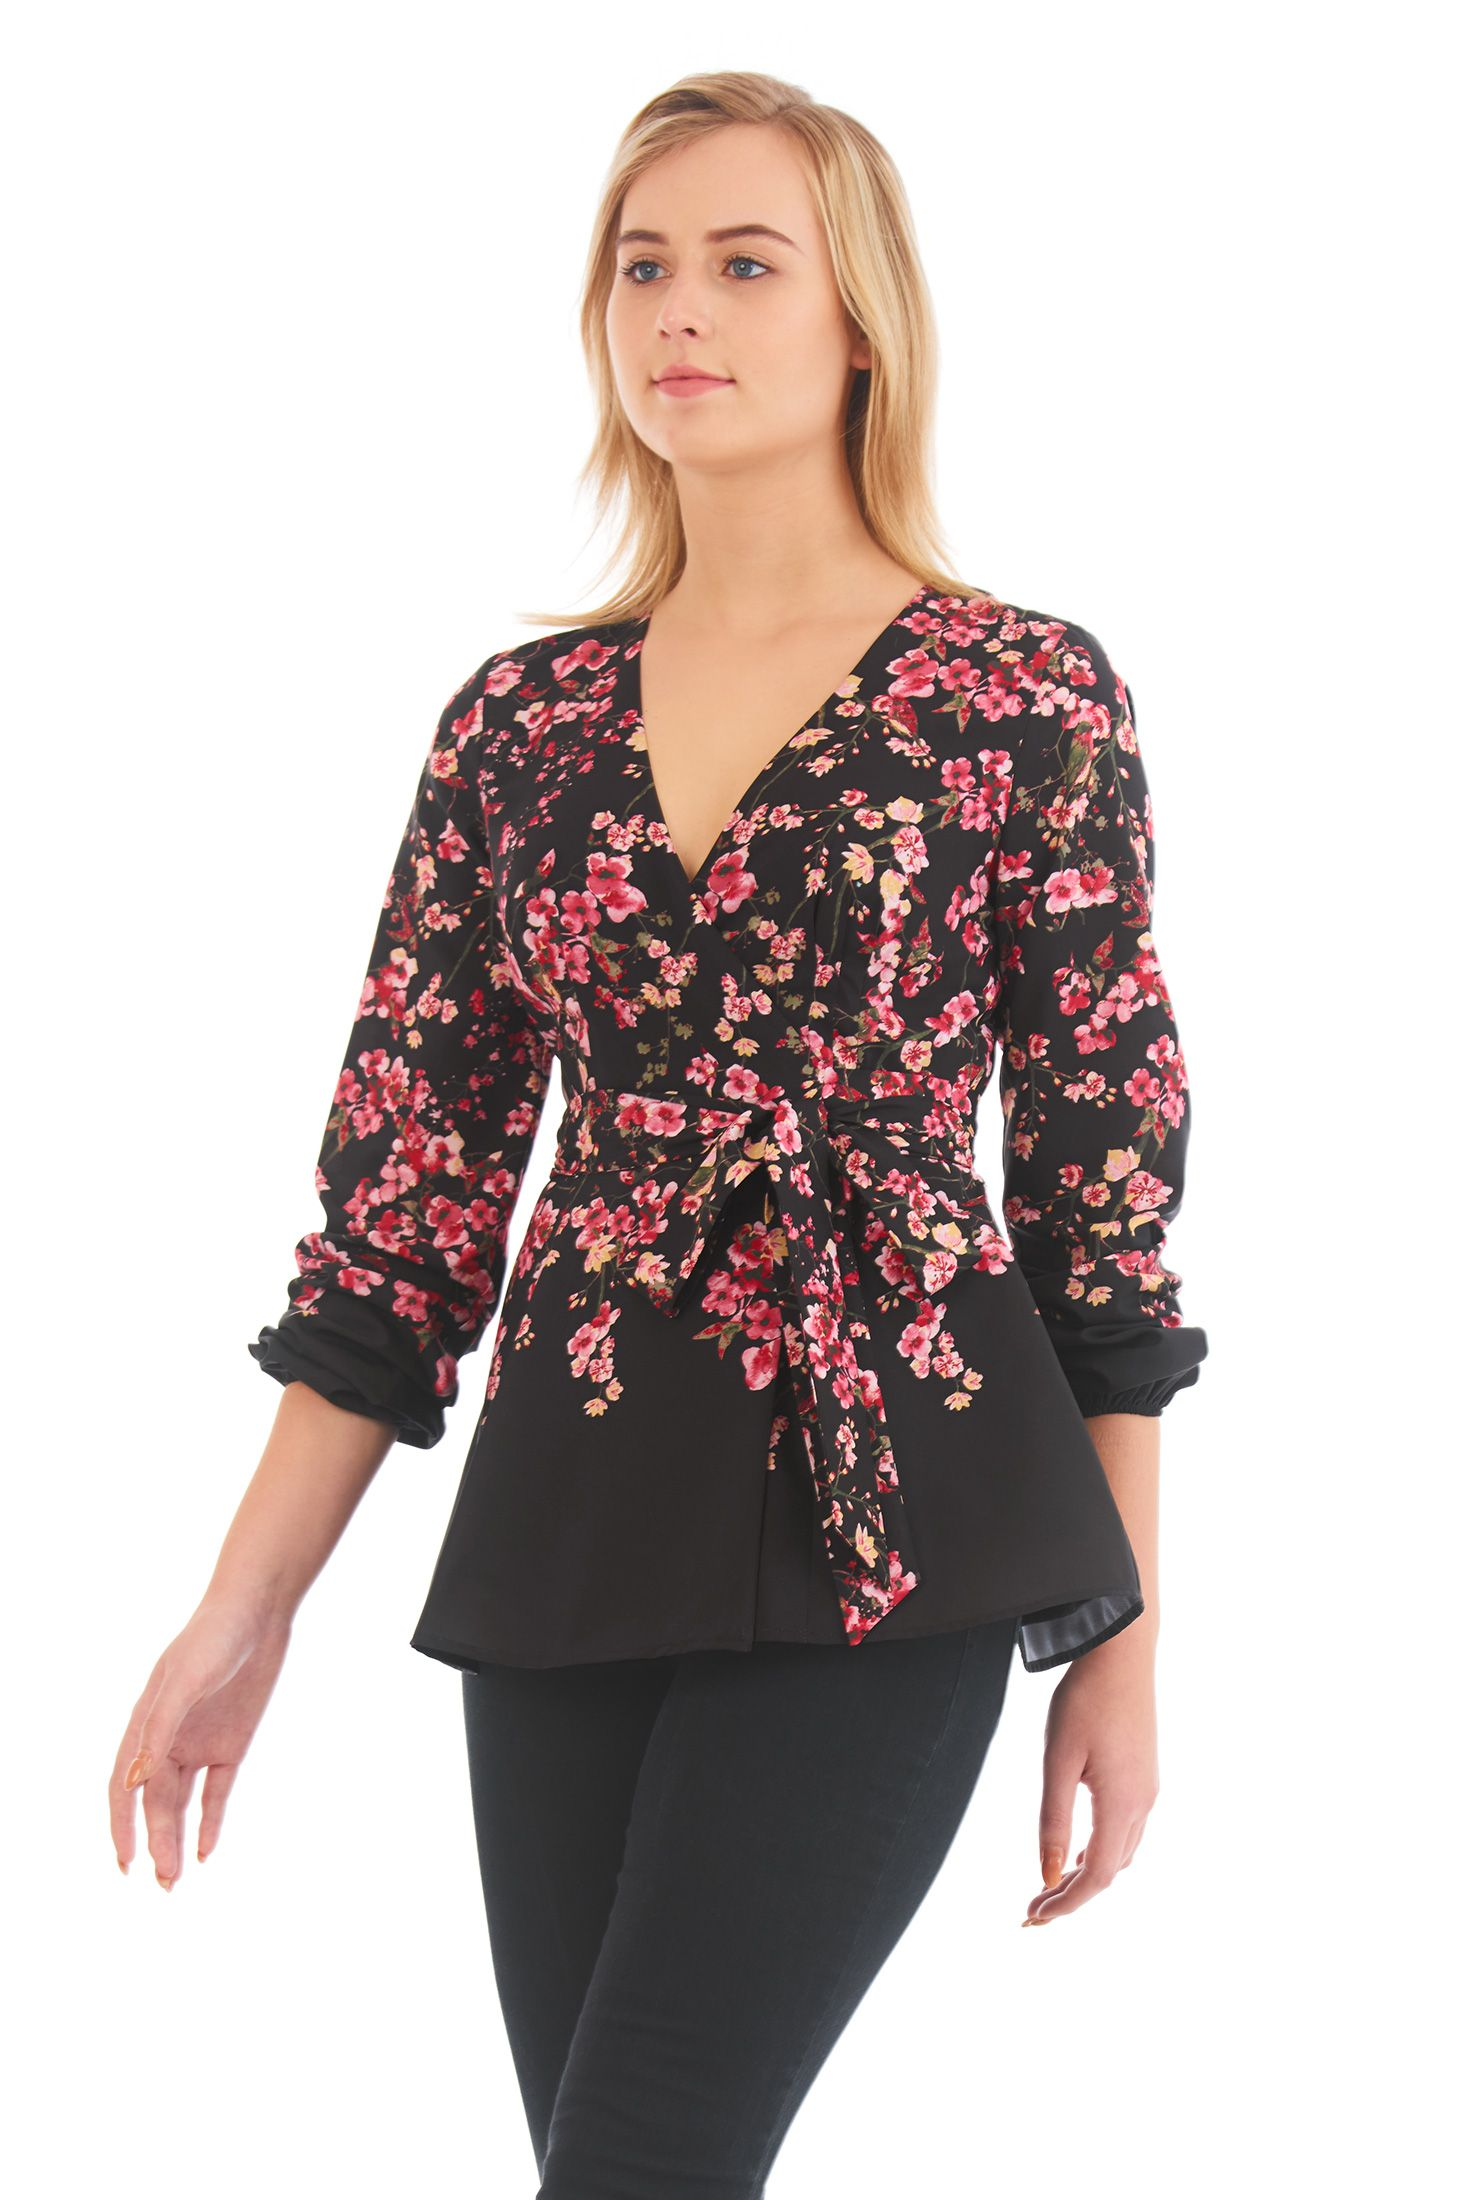 b7aa439b27 Casual Tops, crepe tops, extra long sleeve tops, Floral Print Tops ...